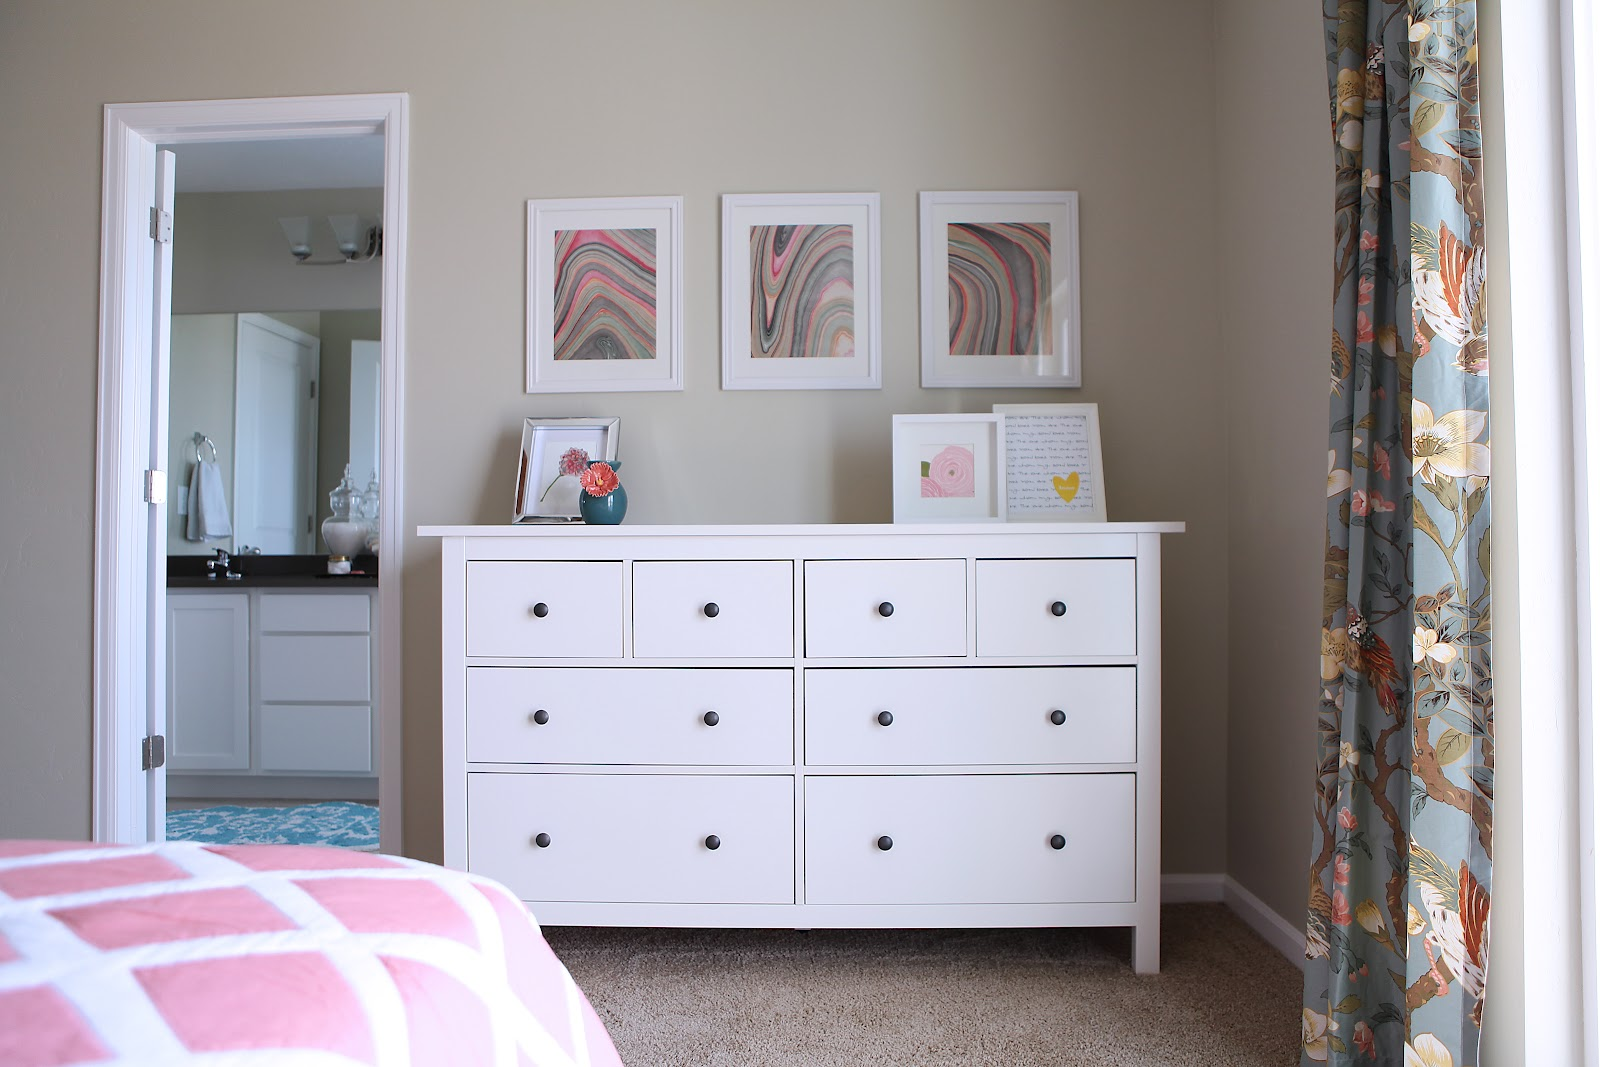 ikea white hemnes bedroom furniture photo - 3